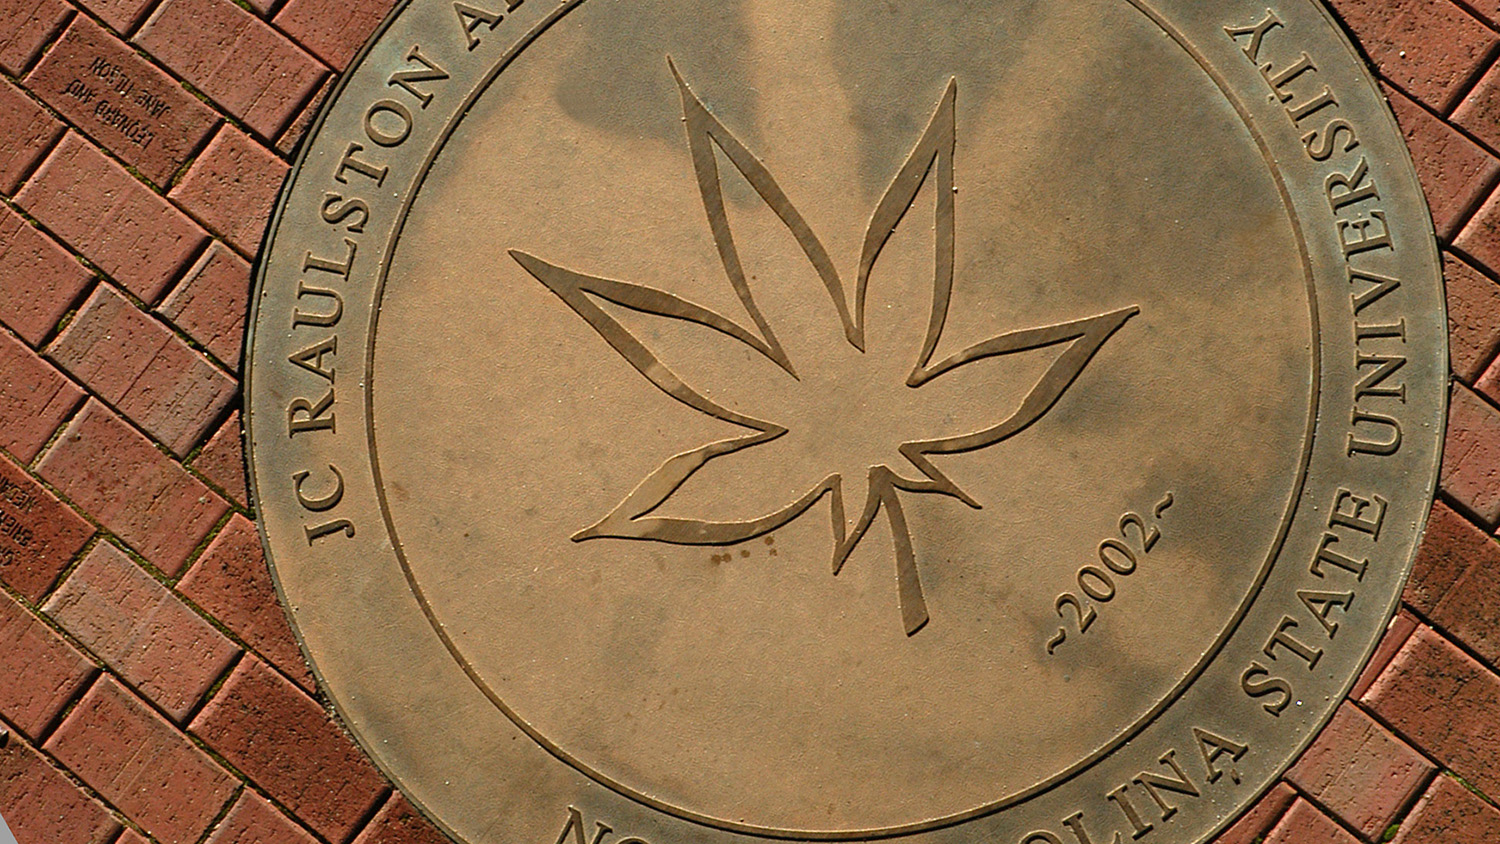 JC Raulston Arboretum seal by the Ruby McSwain building.